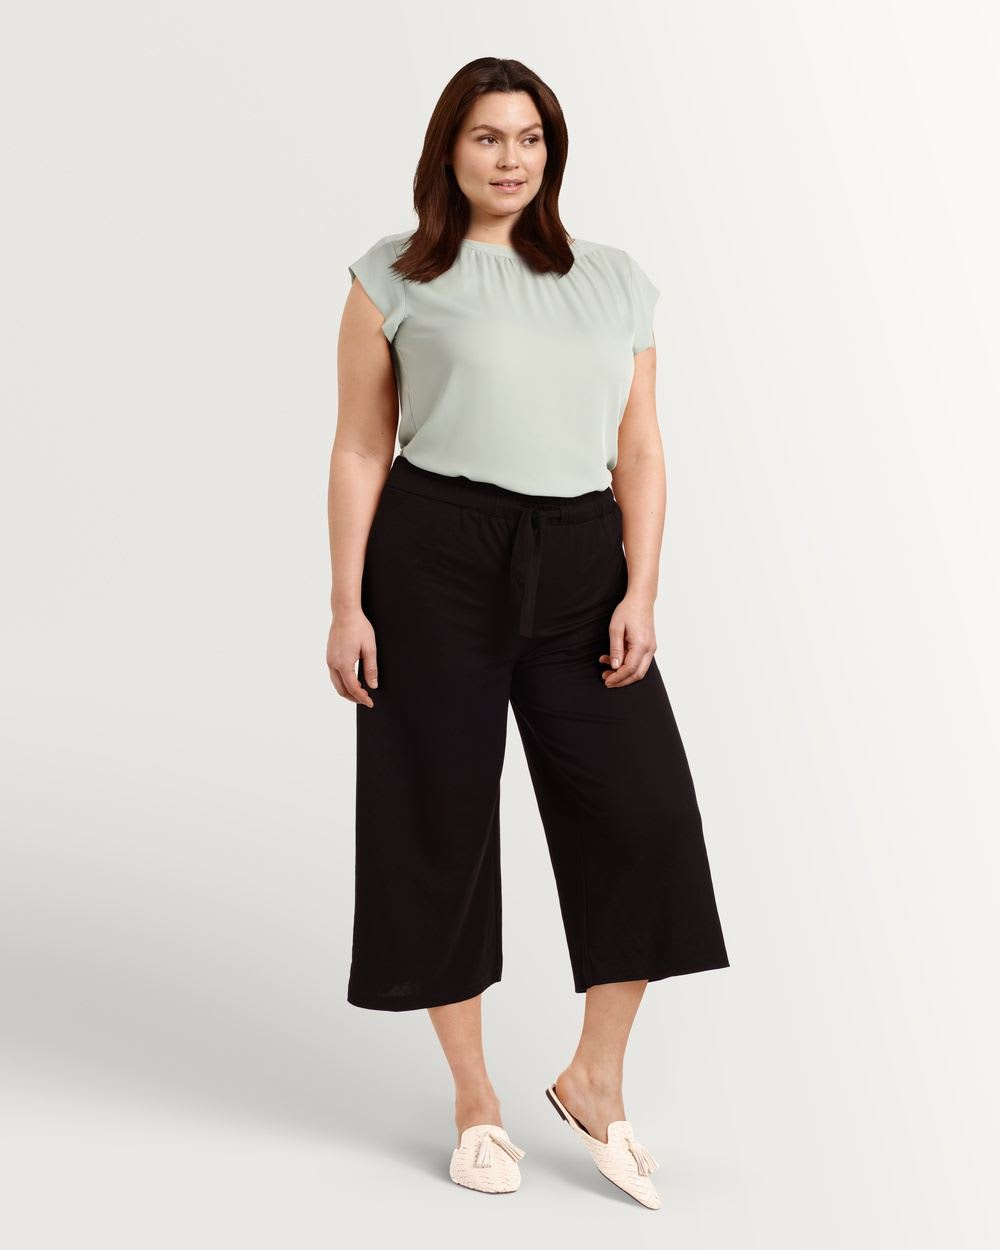 Pull On Knit Wide Cropped Pants